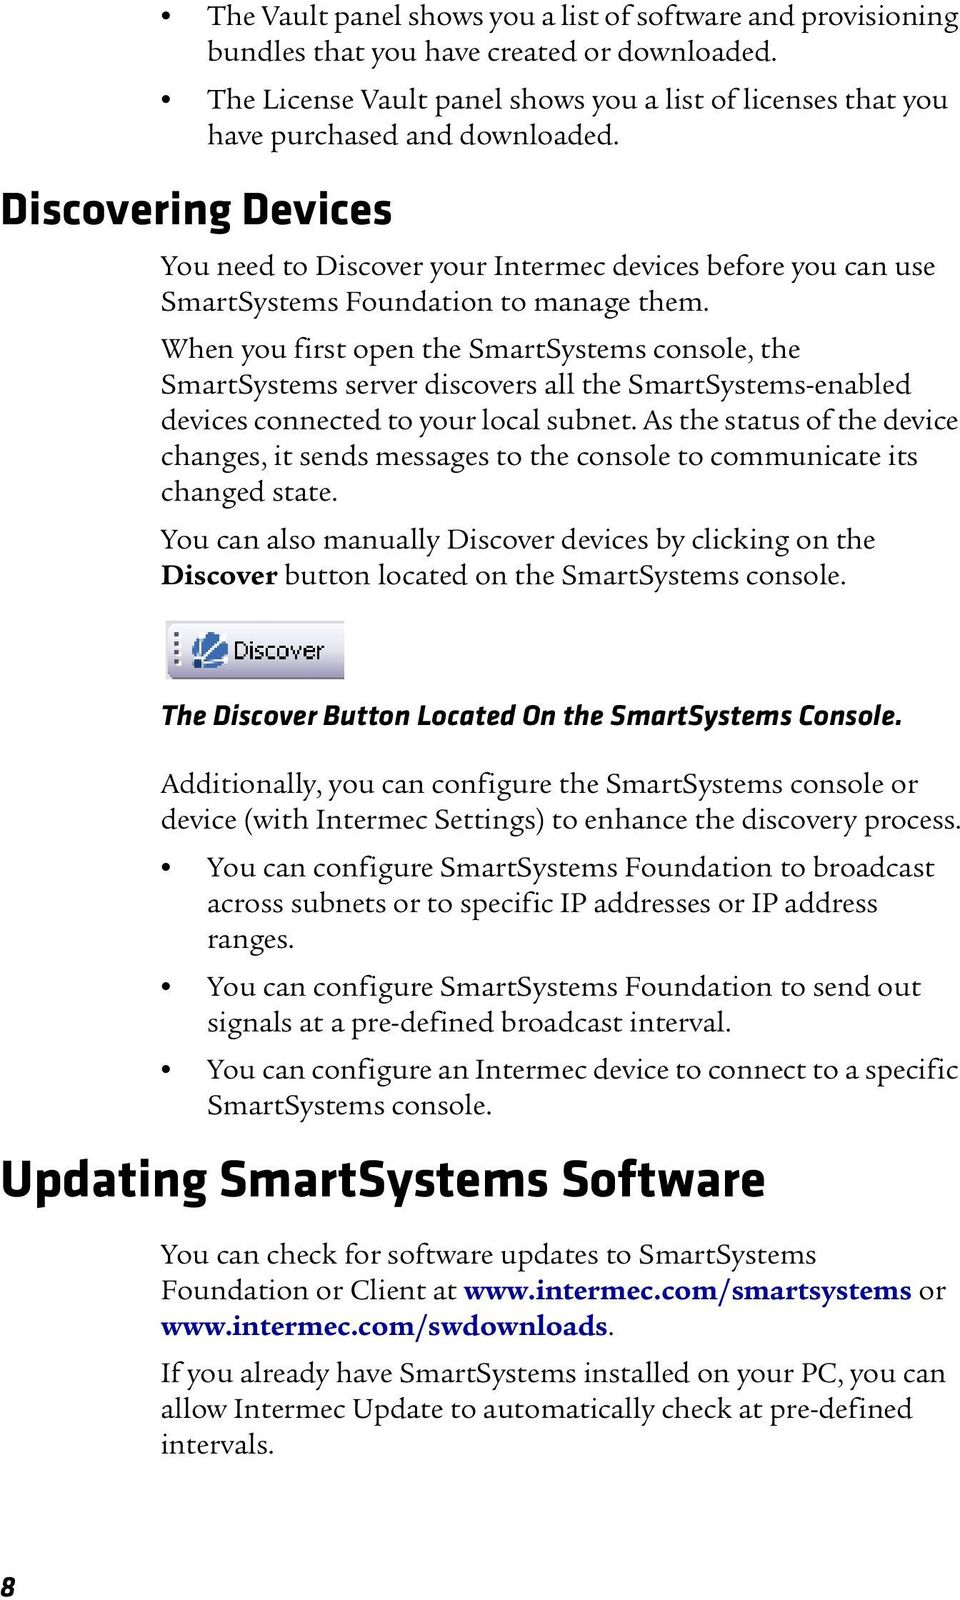 When you first open the SmartSystems console, the SmartSystems server discovers all the SmartSystems-enabled devices connected to your local subnet.